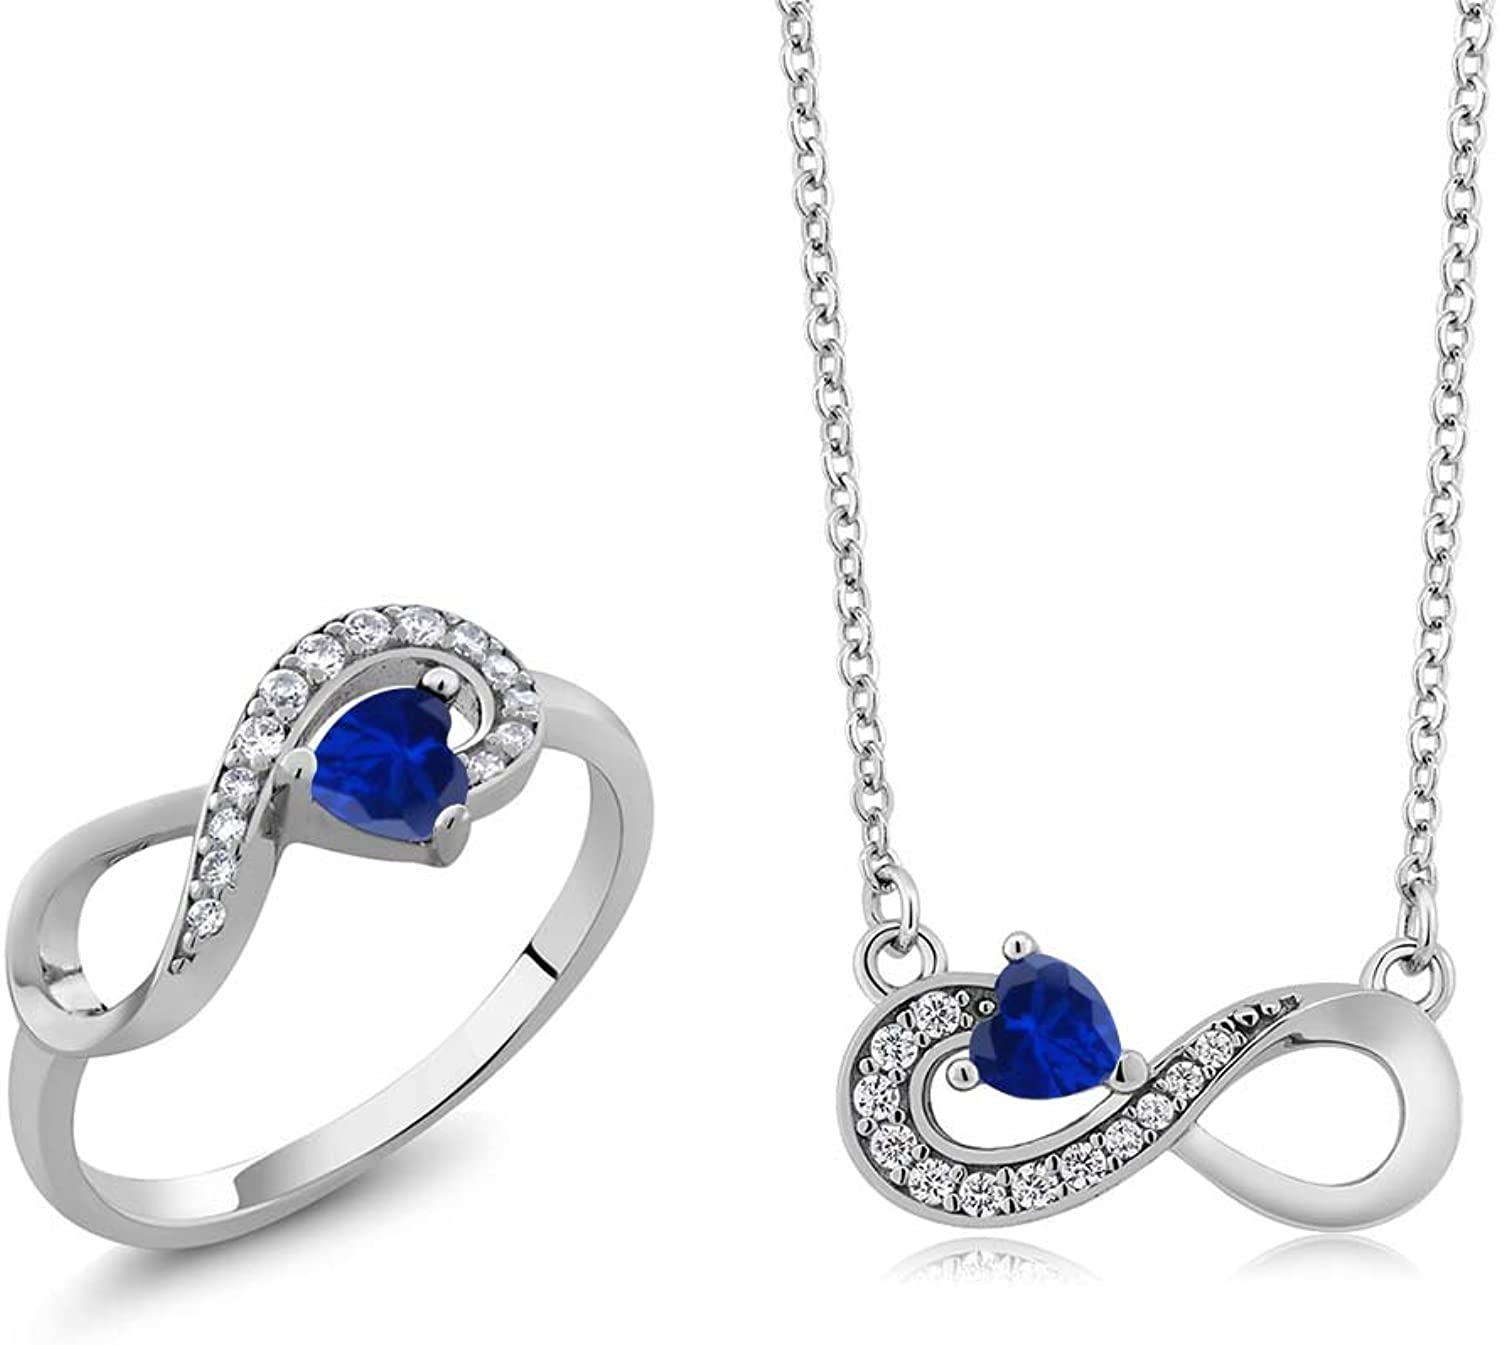 1.25 Ct Heart Shape bluee Simulated Sapphire 925 Silver Ring Pendant Set